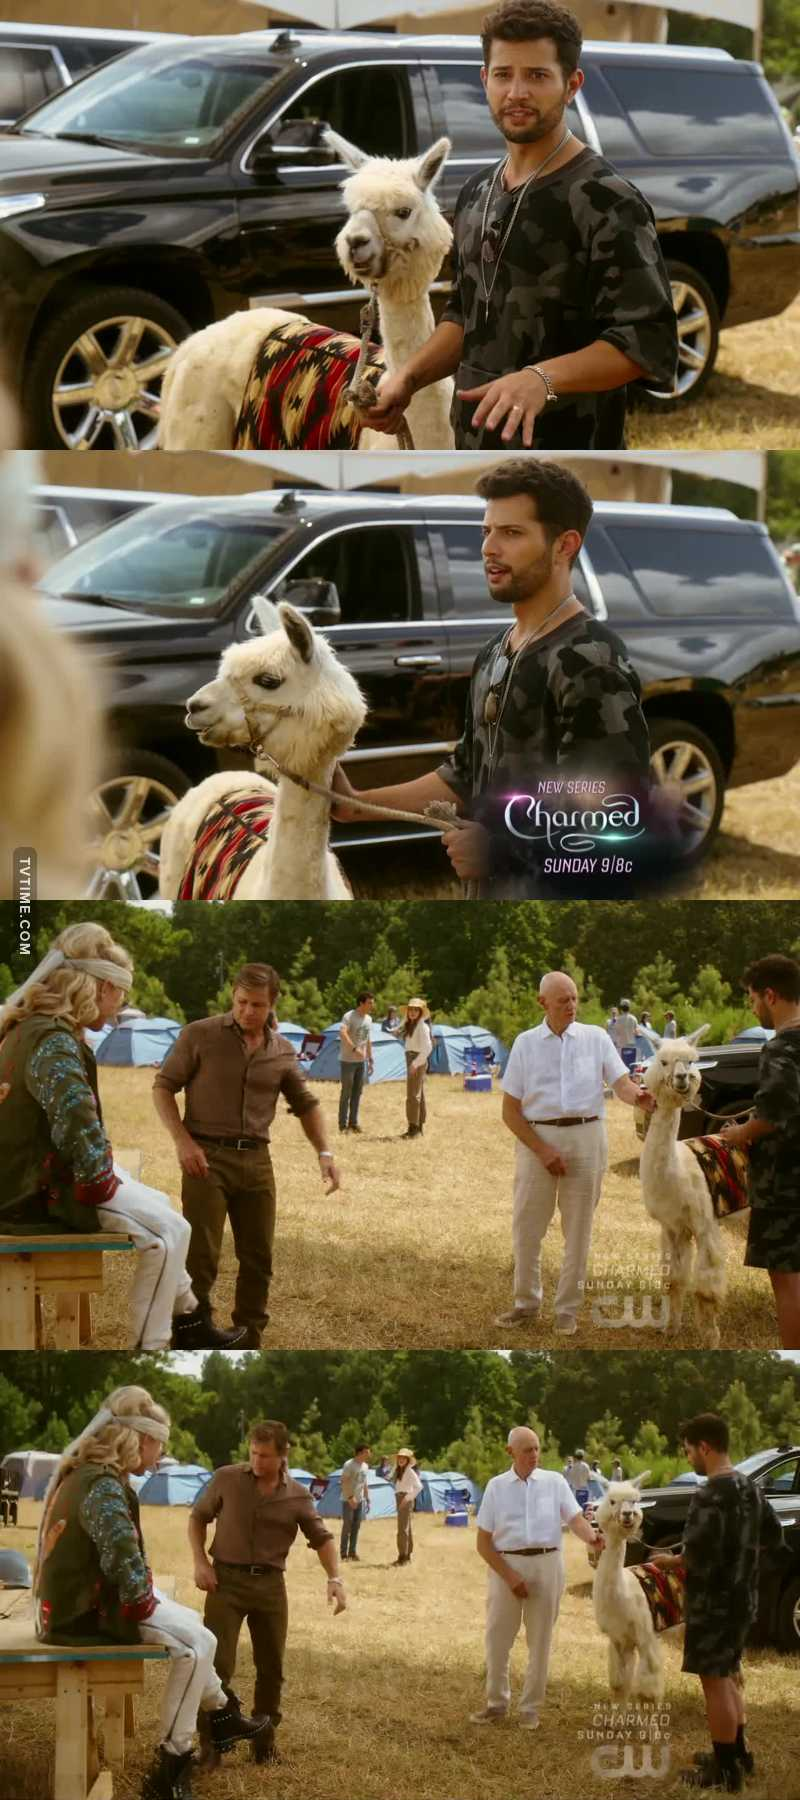 Sam and the alpaca 😂 favourite scenes of the episode. I love how Anders pets the alpaca.